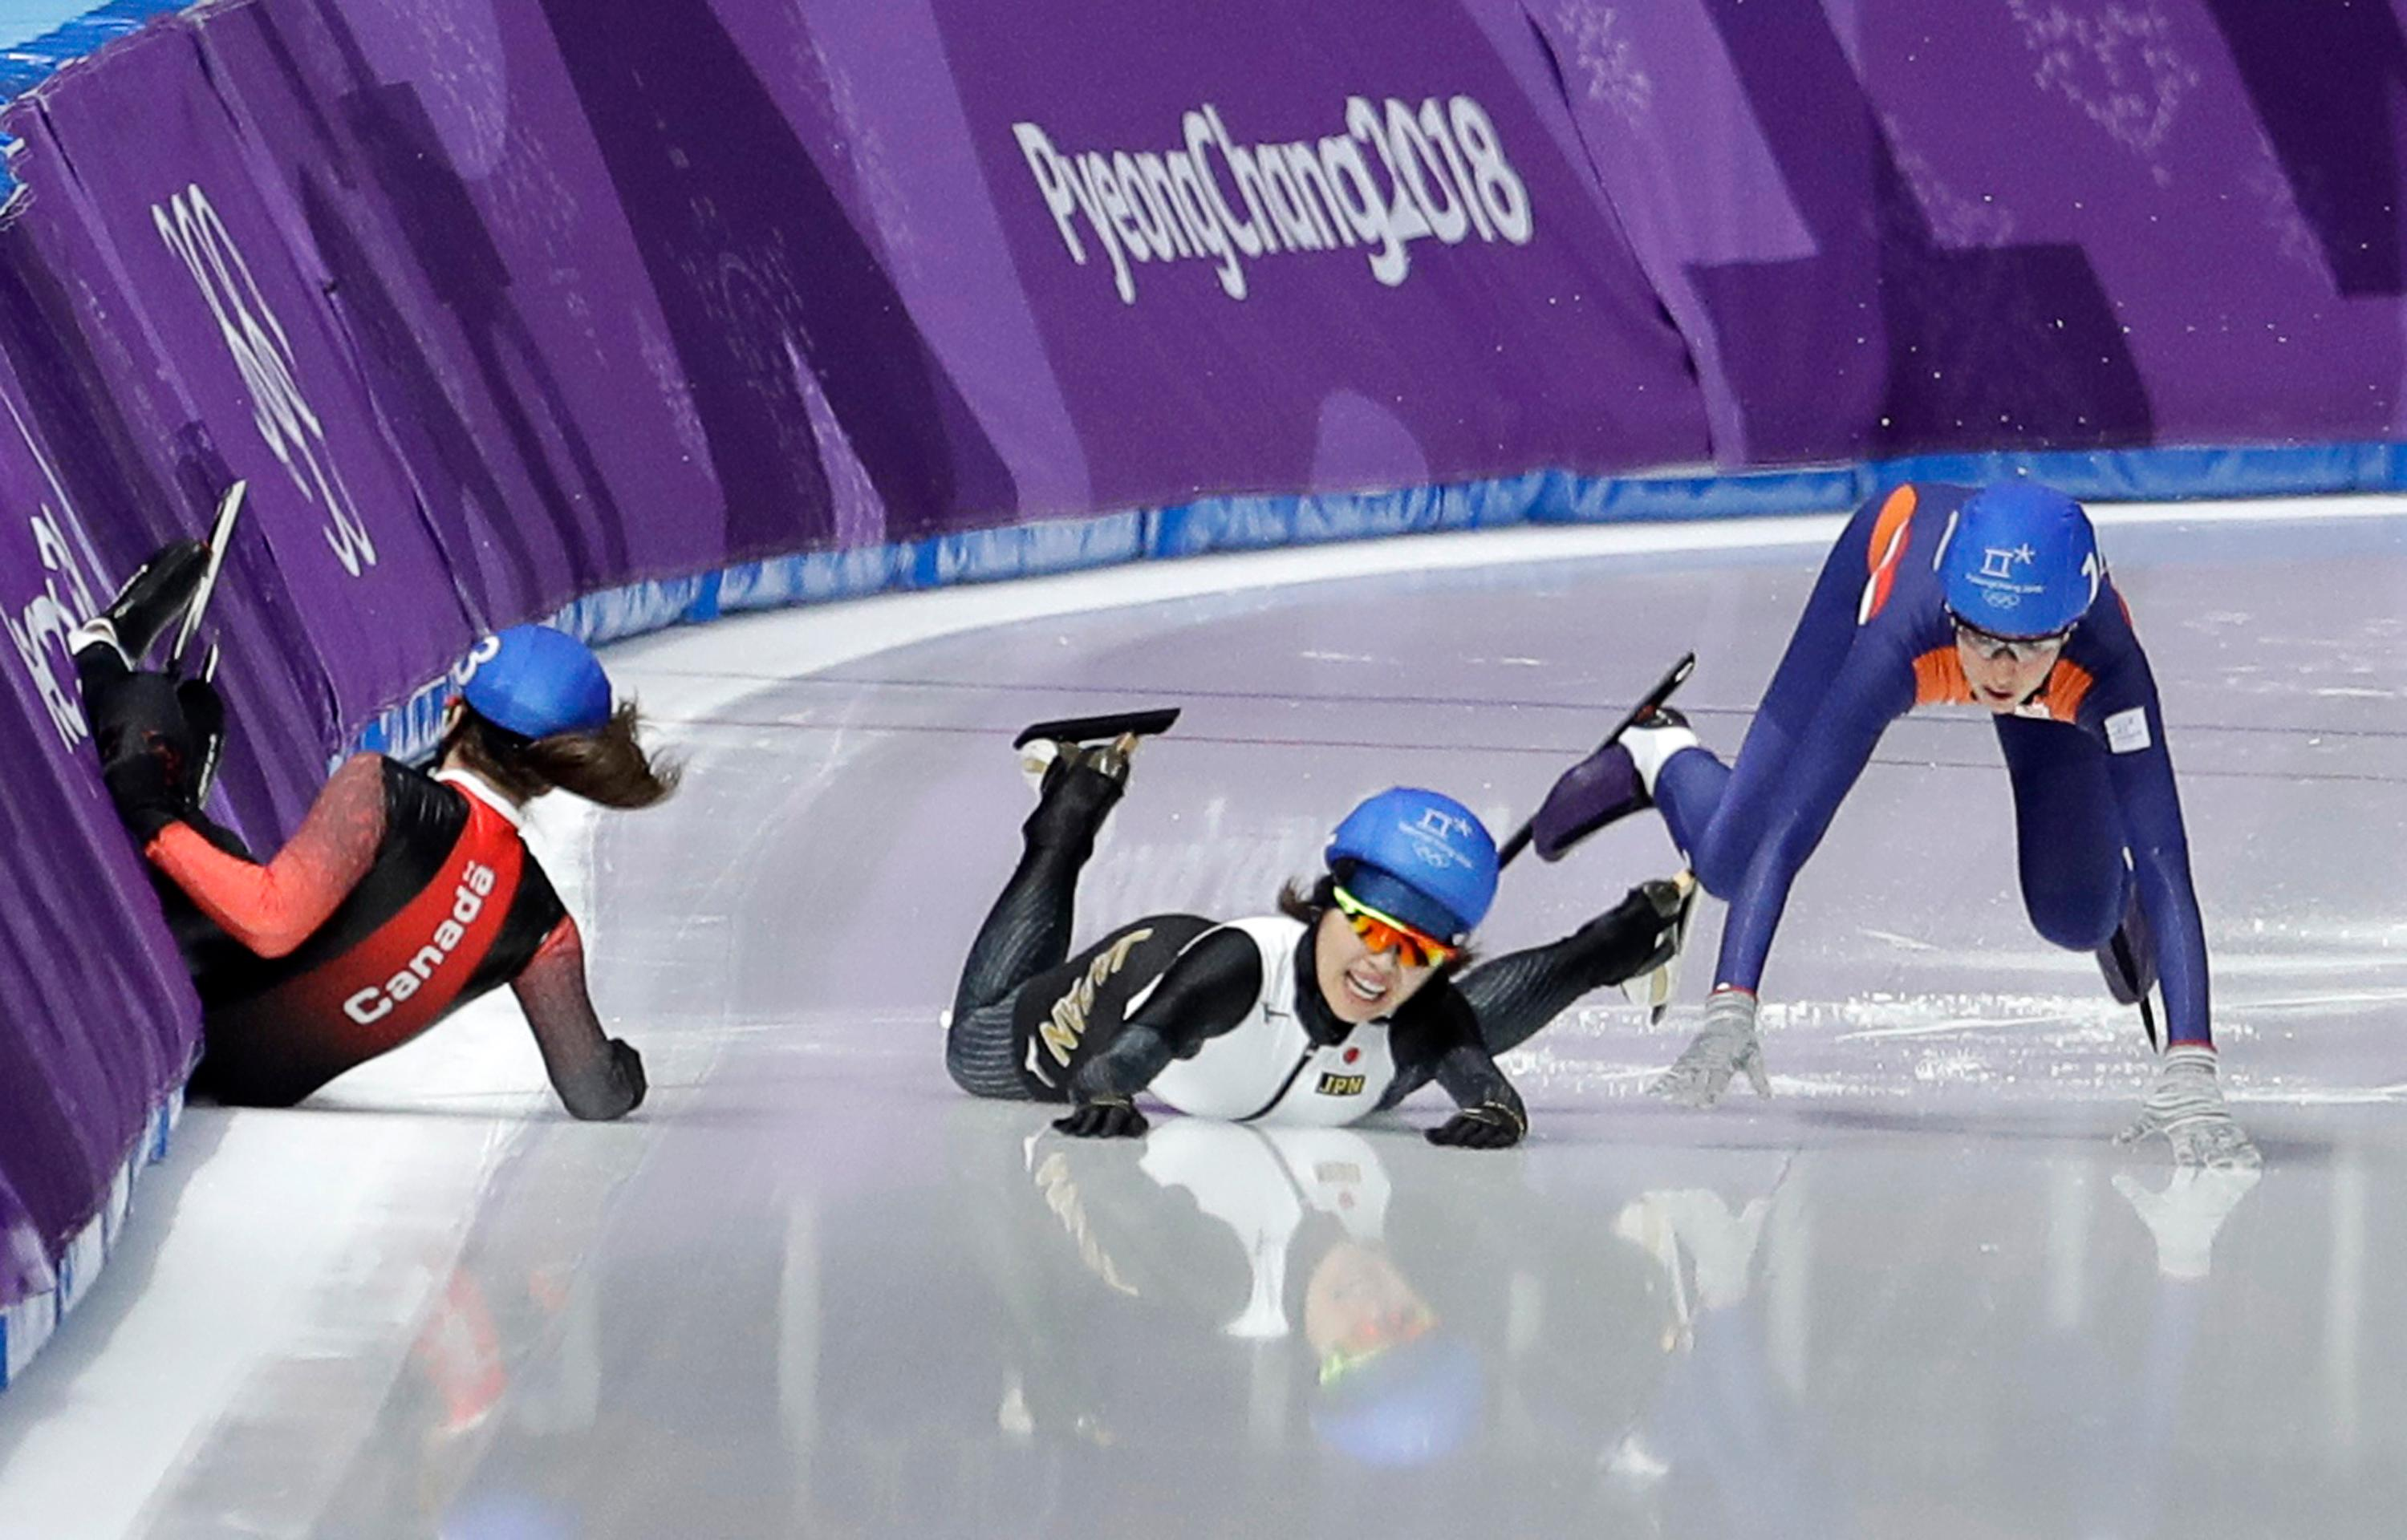 Ivanie Blondin of Canada, Ayano Sato of Japan, and Annouk van der Weijden of The Netherlands, from left to right, crash during the women's mass start speedskating race at the Gangneung Oval at the 2018 Winter Olympics in Gangneung, South Korea, Saturday, Feb. 24, 2018. (AP Photo/Petr David Josek)